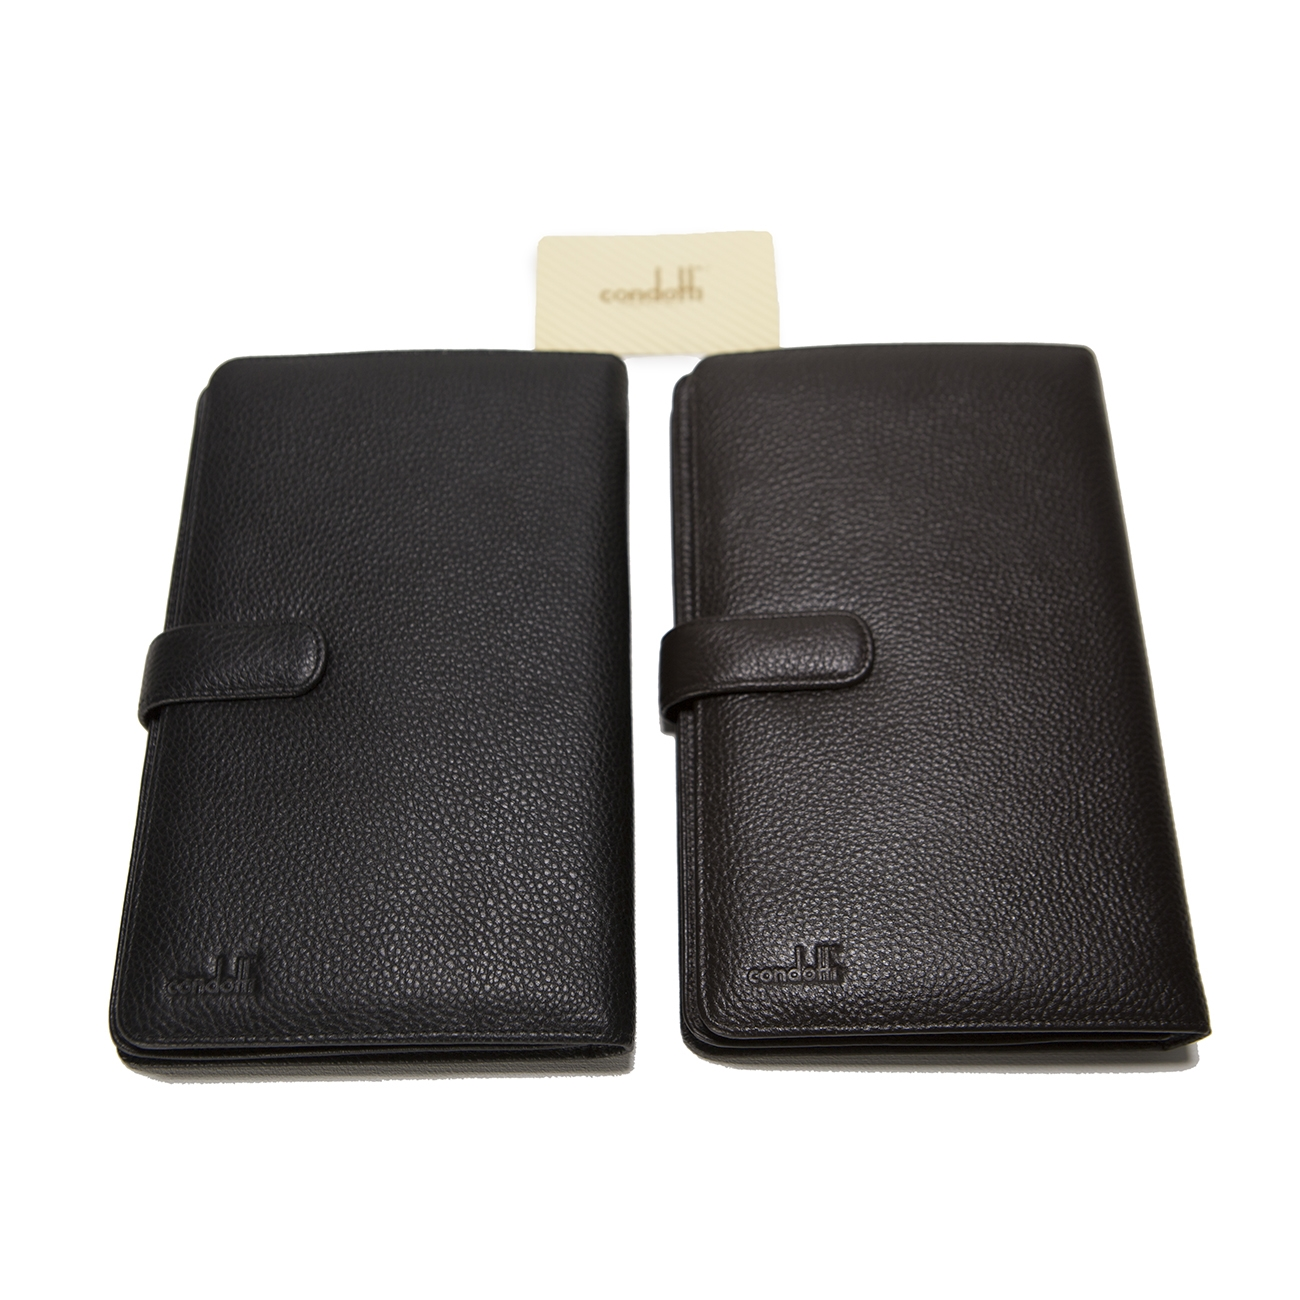 Leather Credit Card Wallet - CODE 142-1604